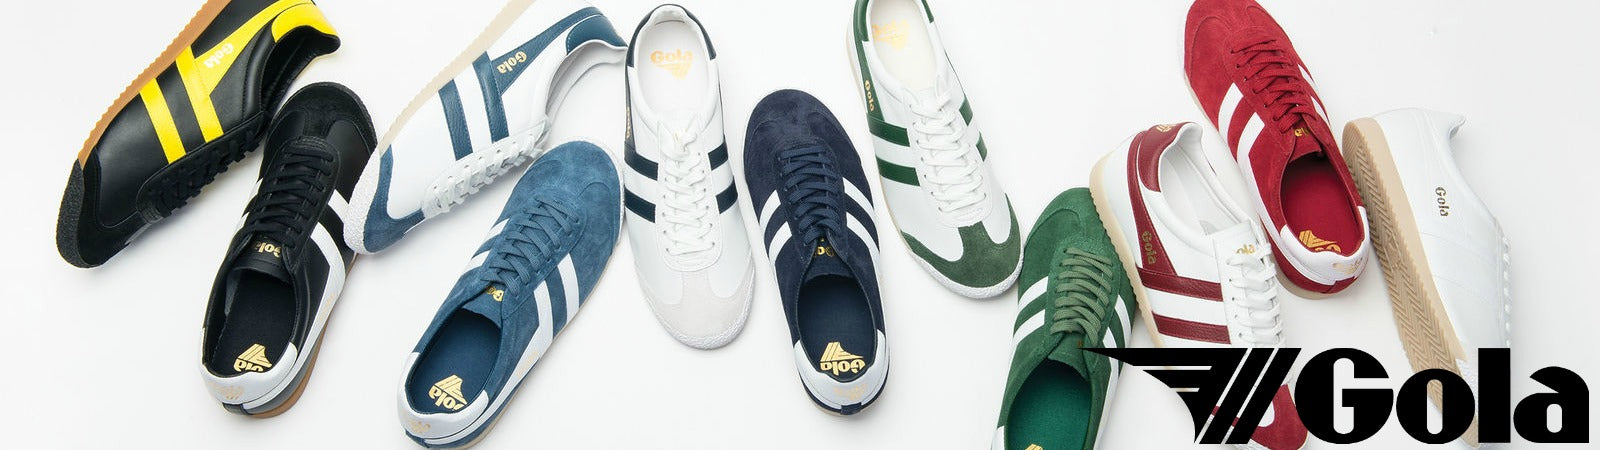 Footwear from Gola Classics's Made in England Collection, available at Sportique.com